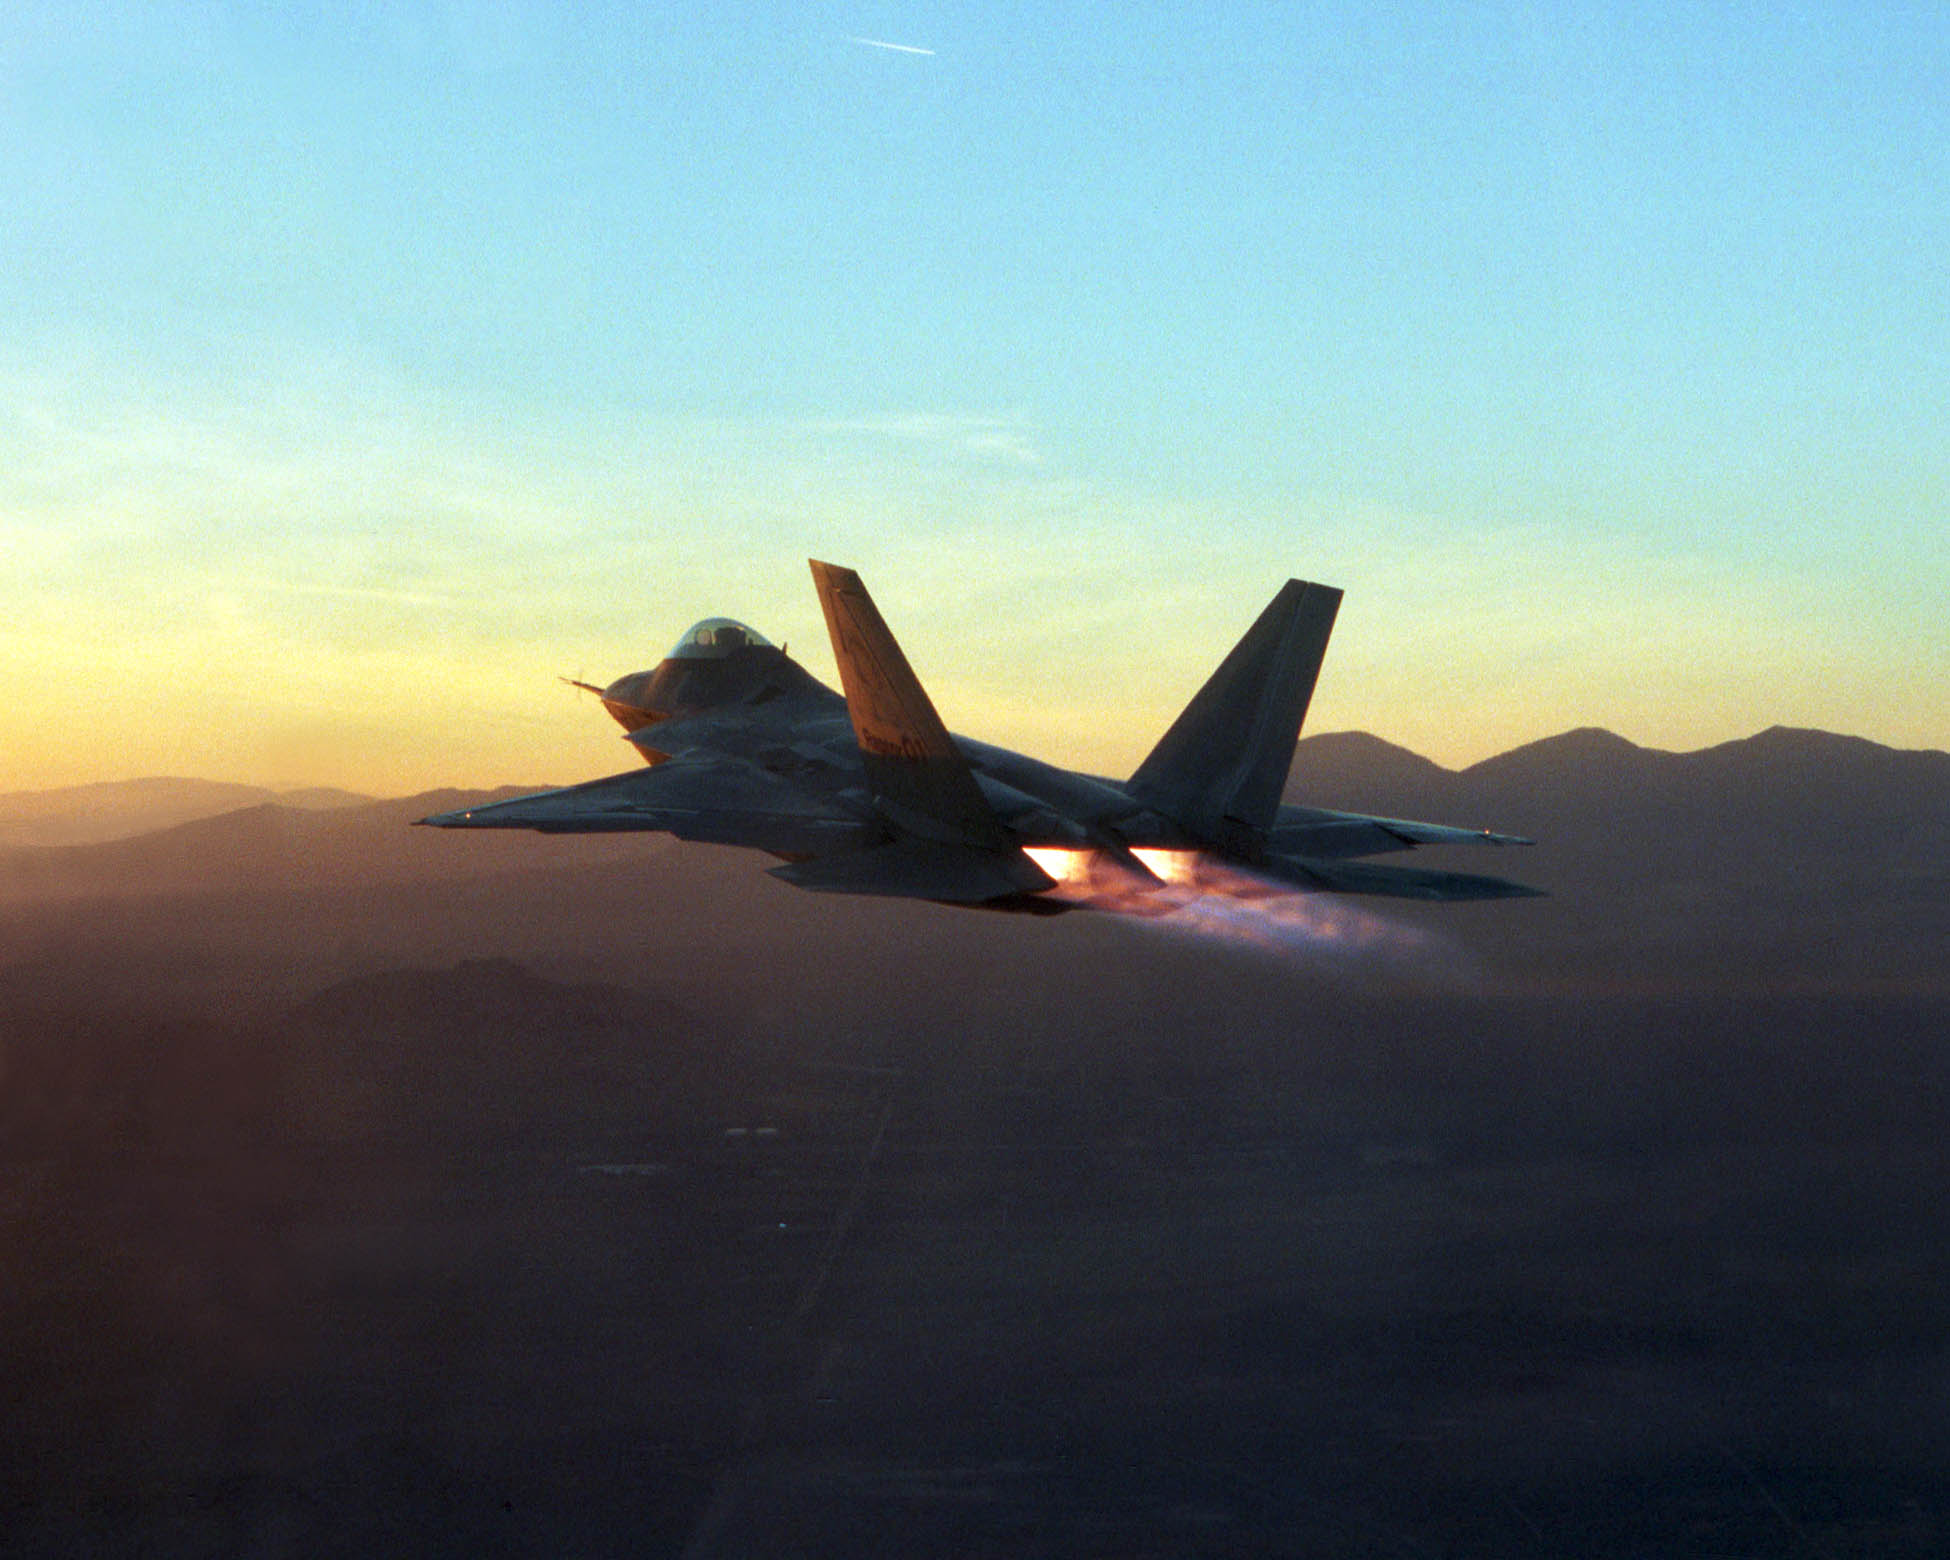 Lockheed Martin F-22 Raptor Computer Wallpapers, Desktop ...